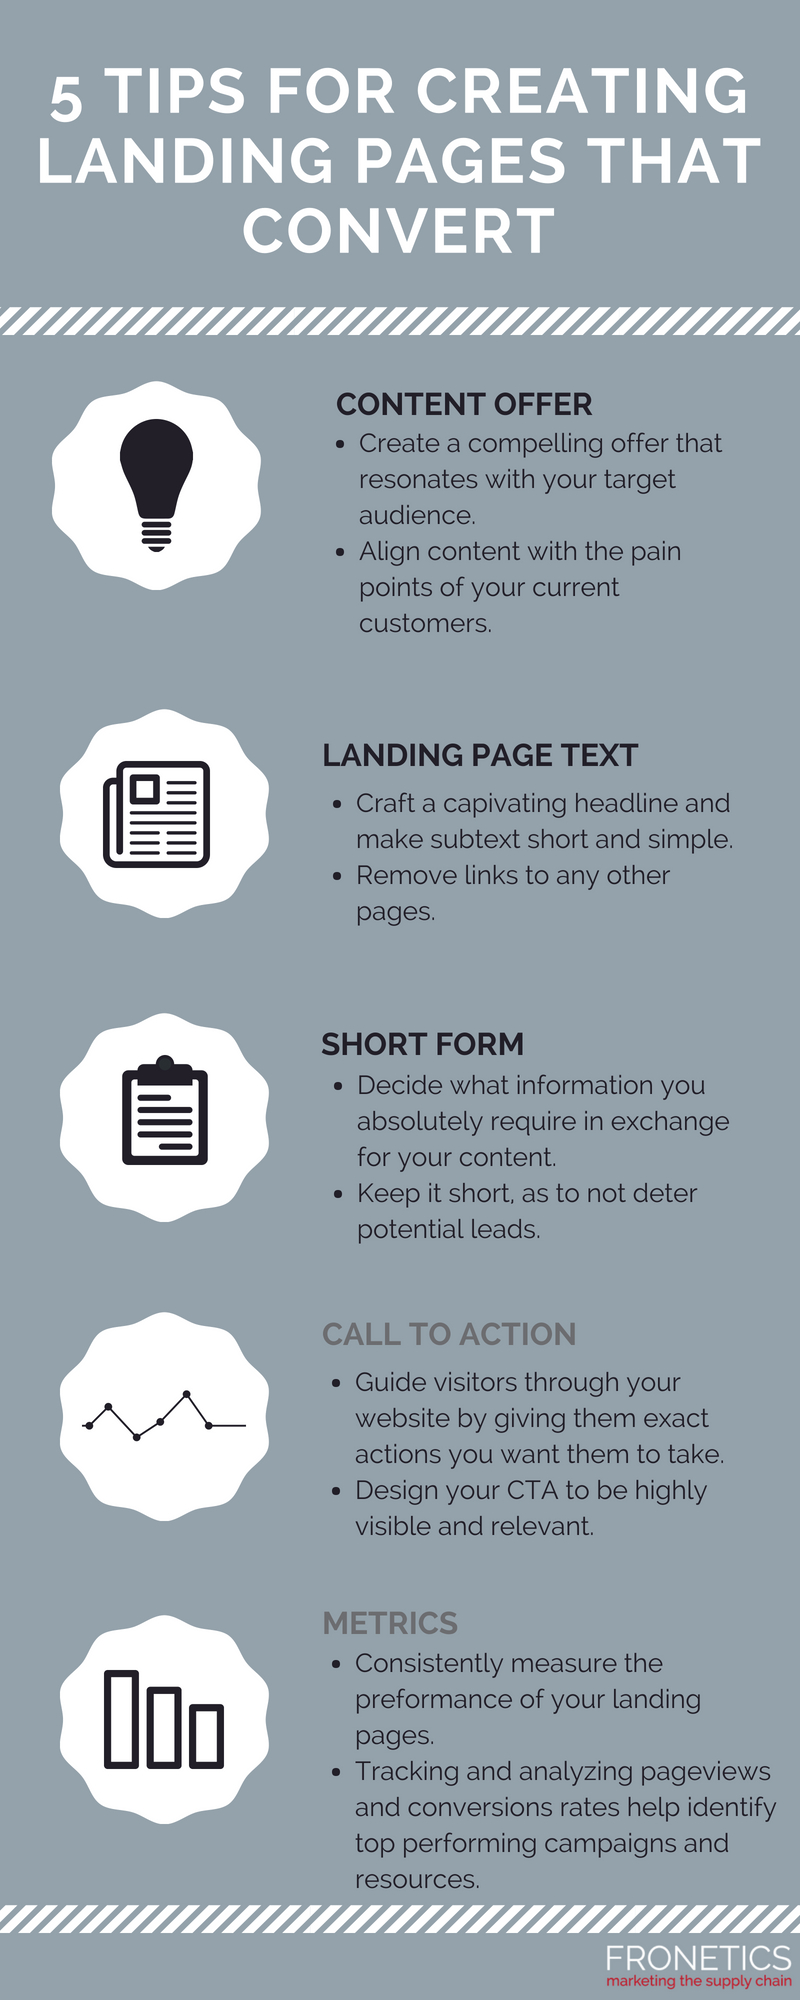 5 Tips for creating landing pages that convert